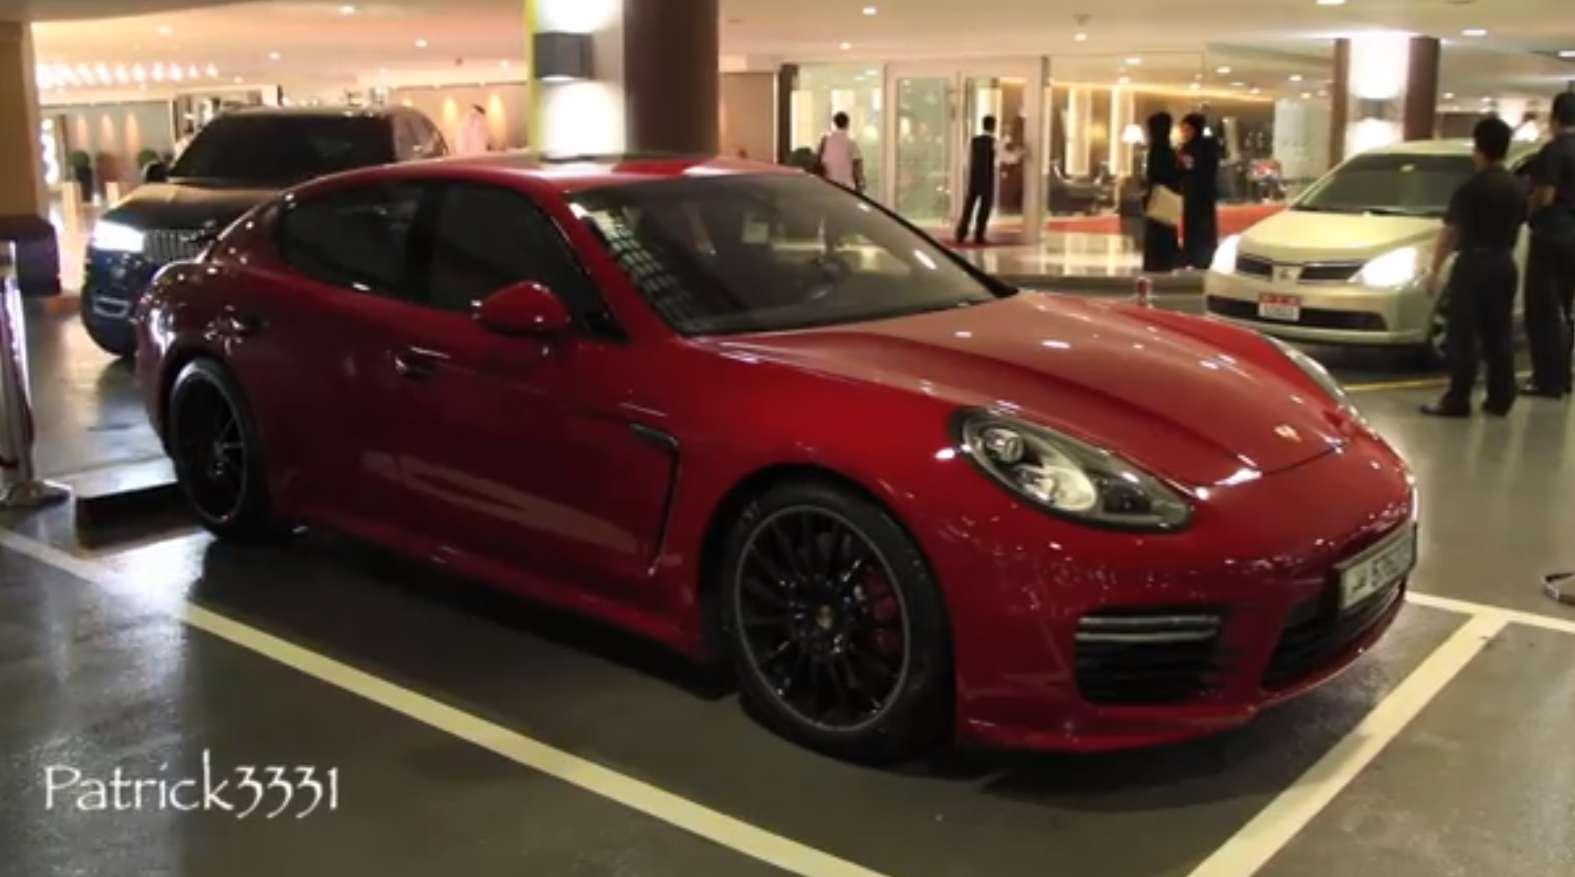 2014 porsche panamera gts spotted in dubai autoevolution. Black Bedroom Furniture Sets. Home Design Ideas